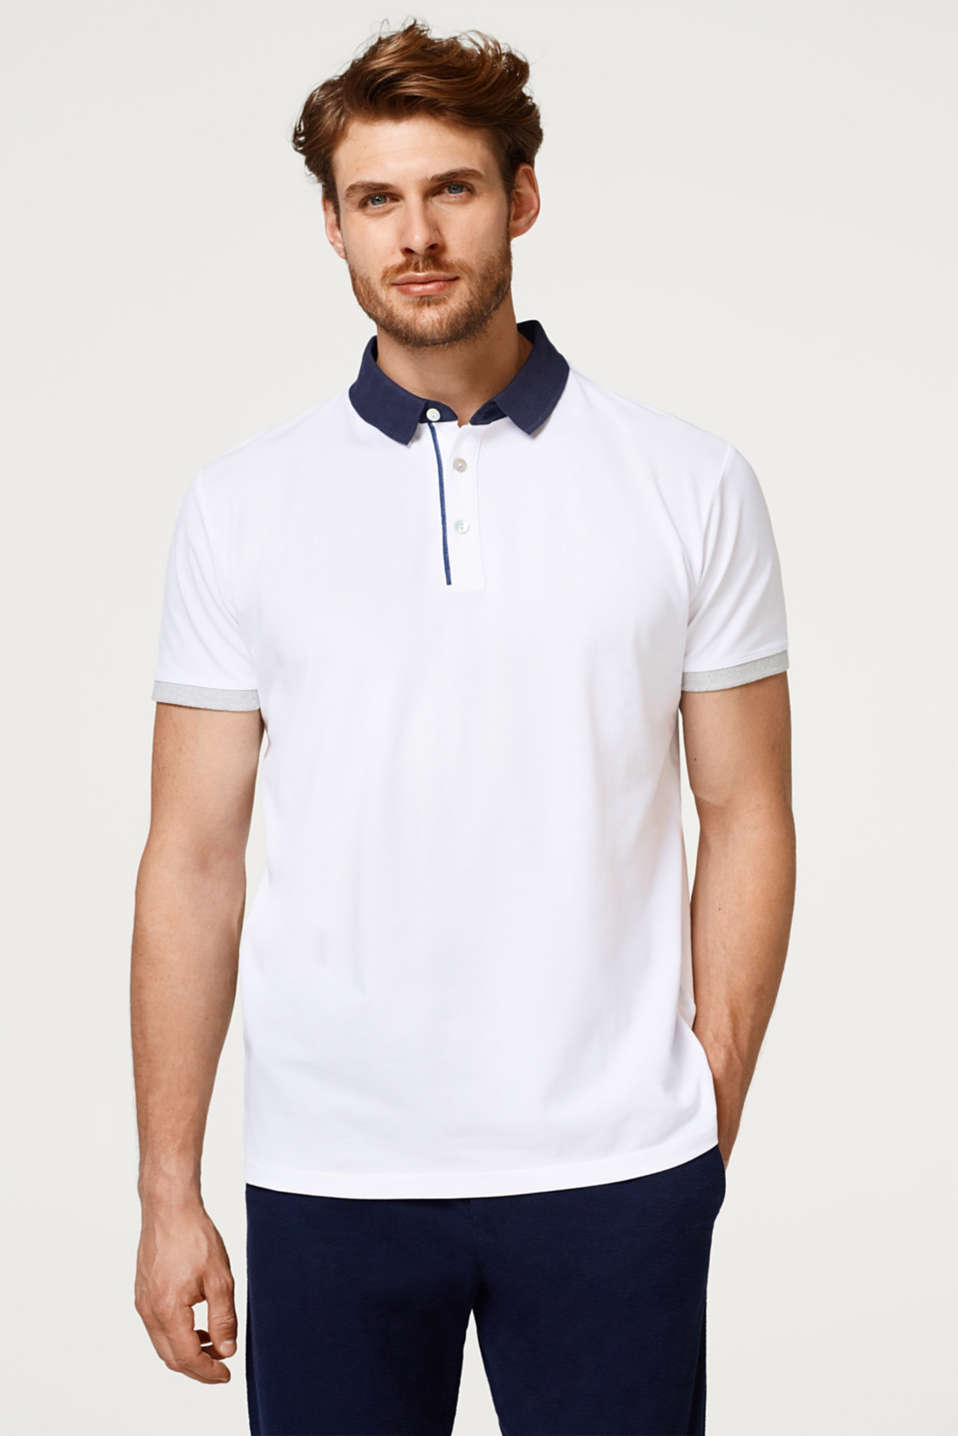 Esprit - Piqué polo shirt with a contrasting colour collar